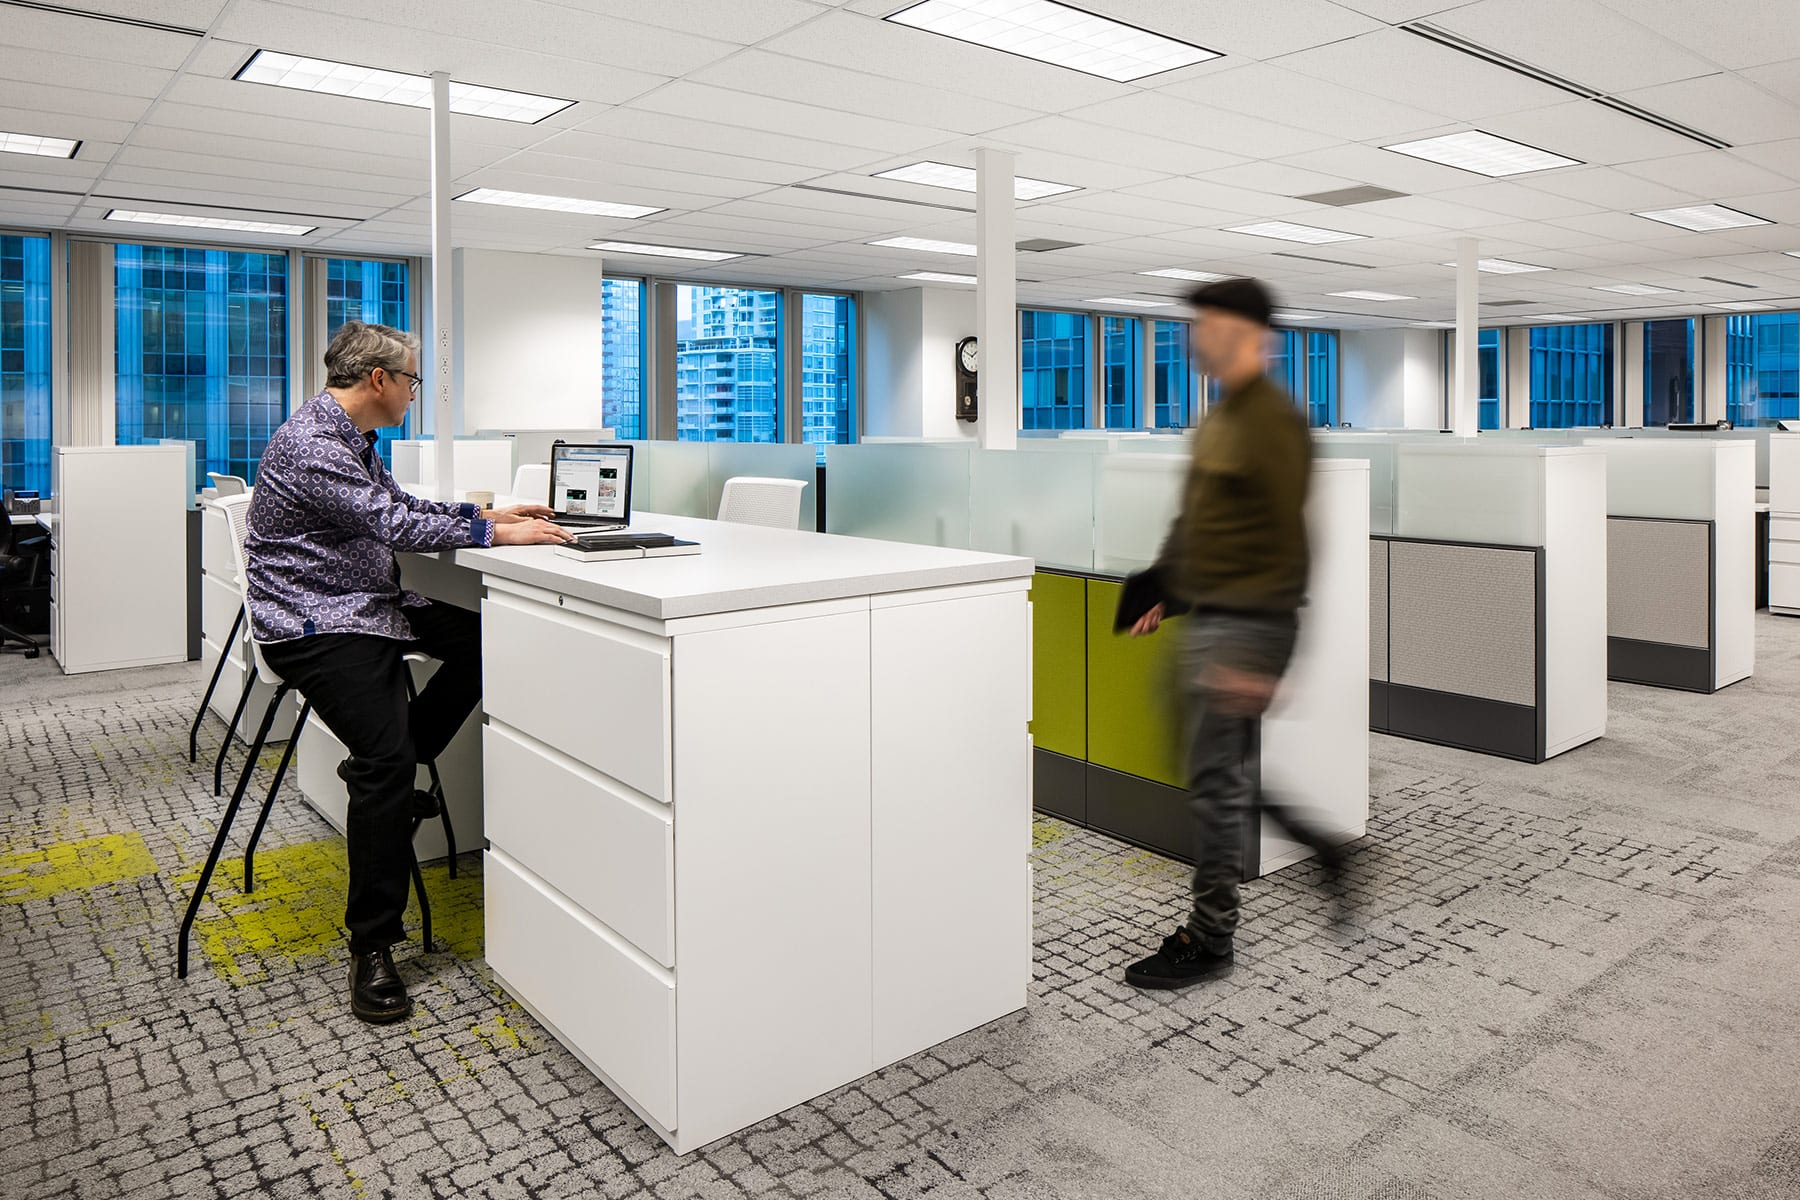 Downtown LEED building interior buildout with open plan workstations and filing cabinet